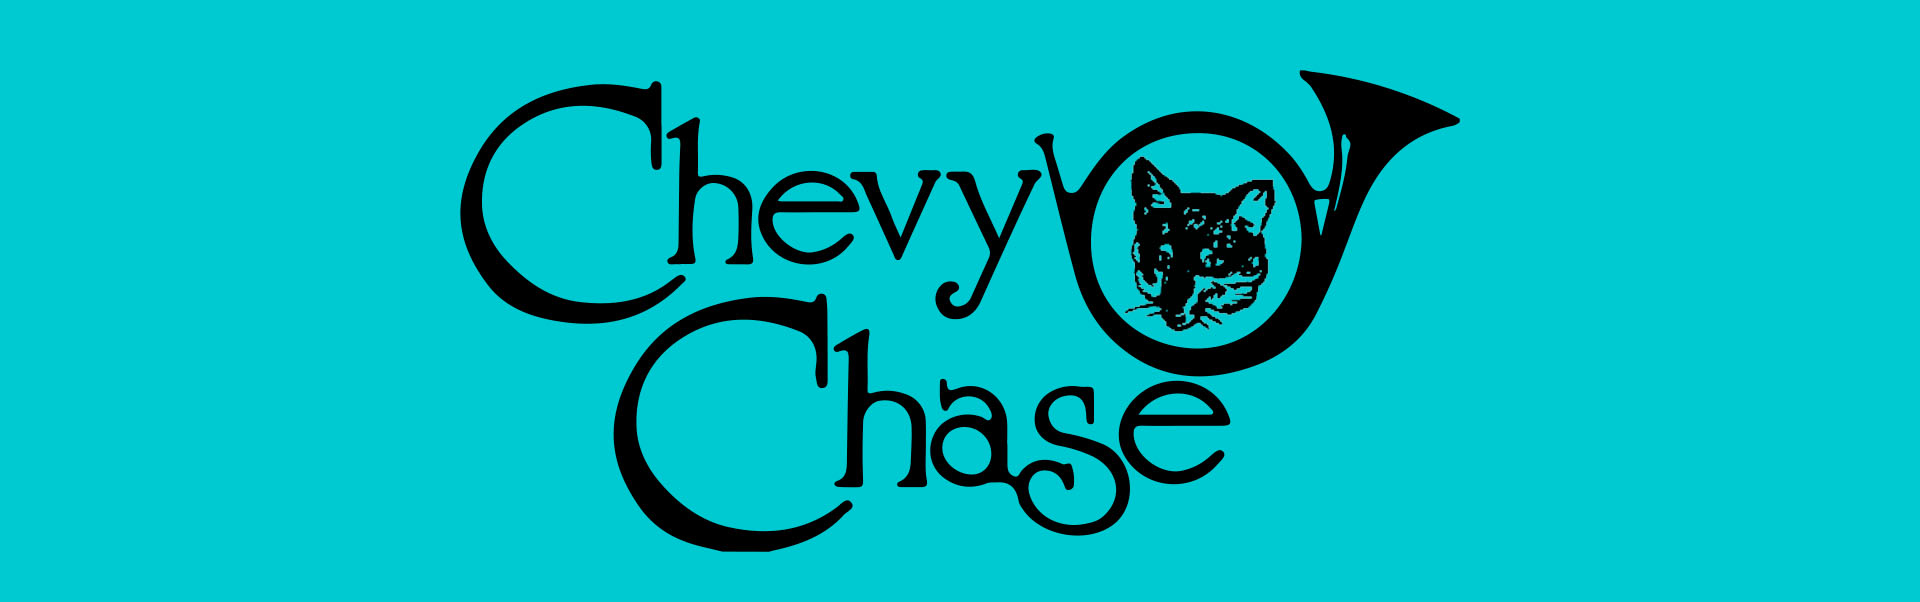 Chevy Chase Shops Banner.jpg